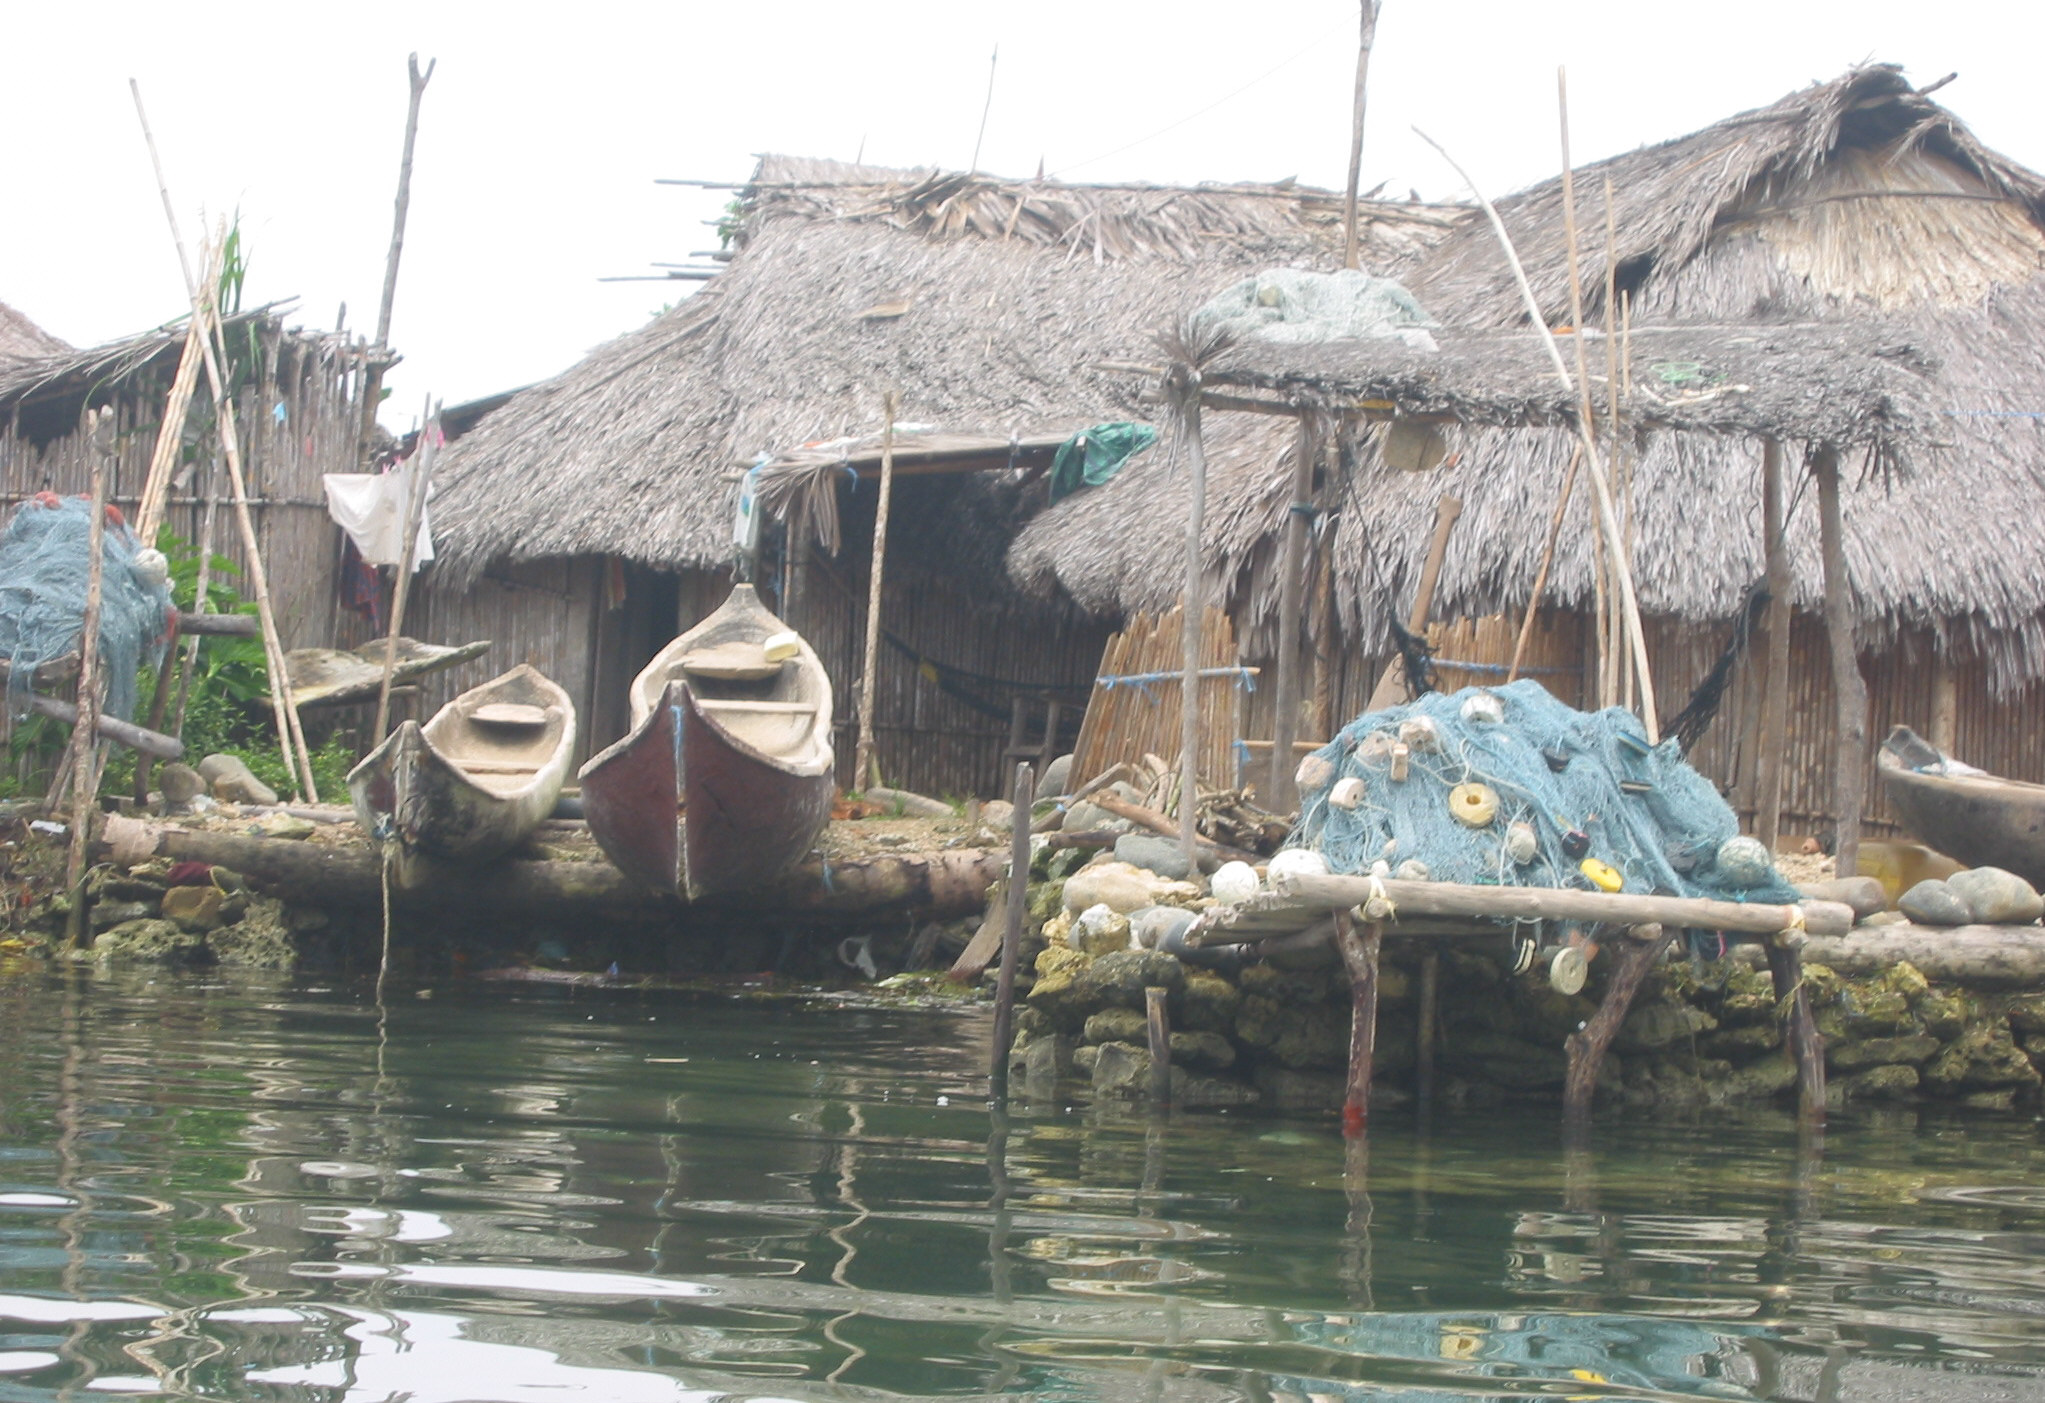 We sailed from village to village